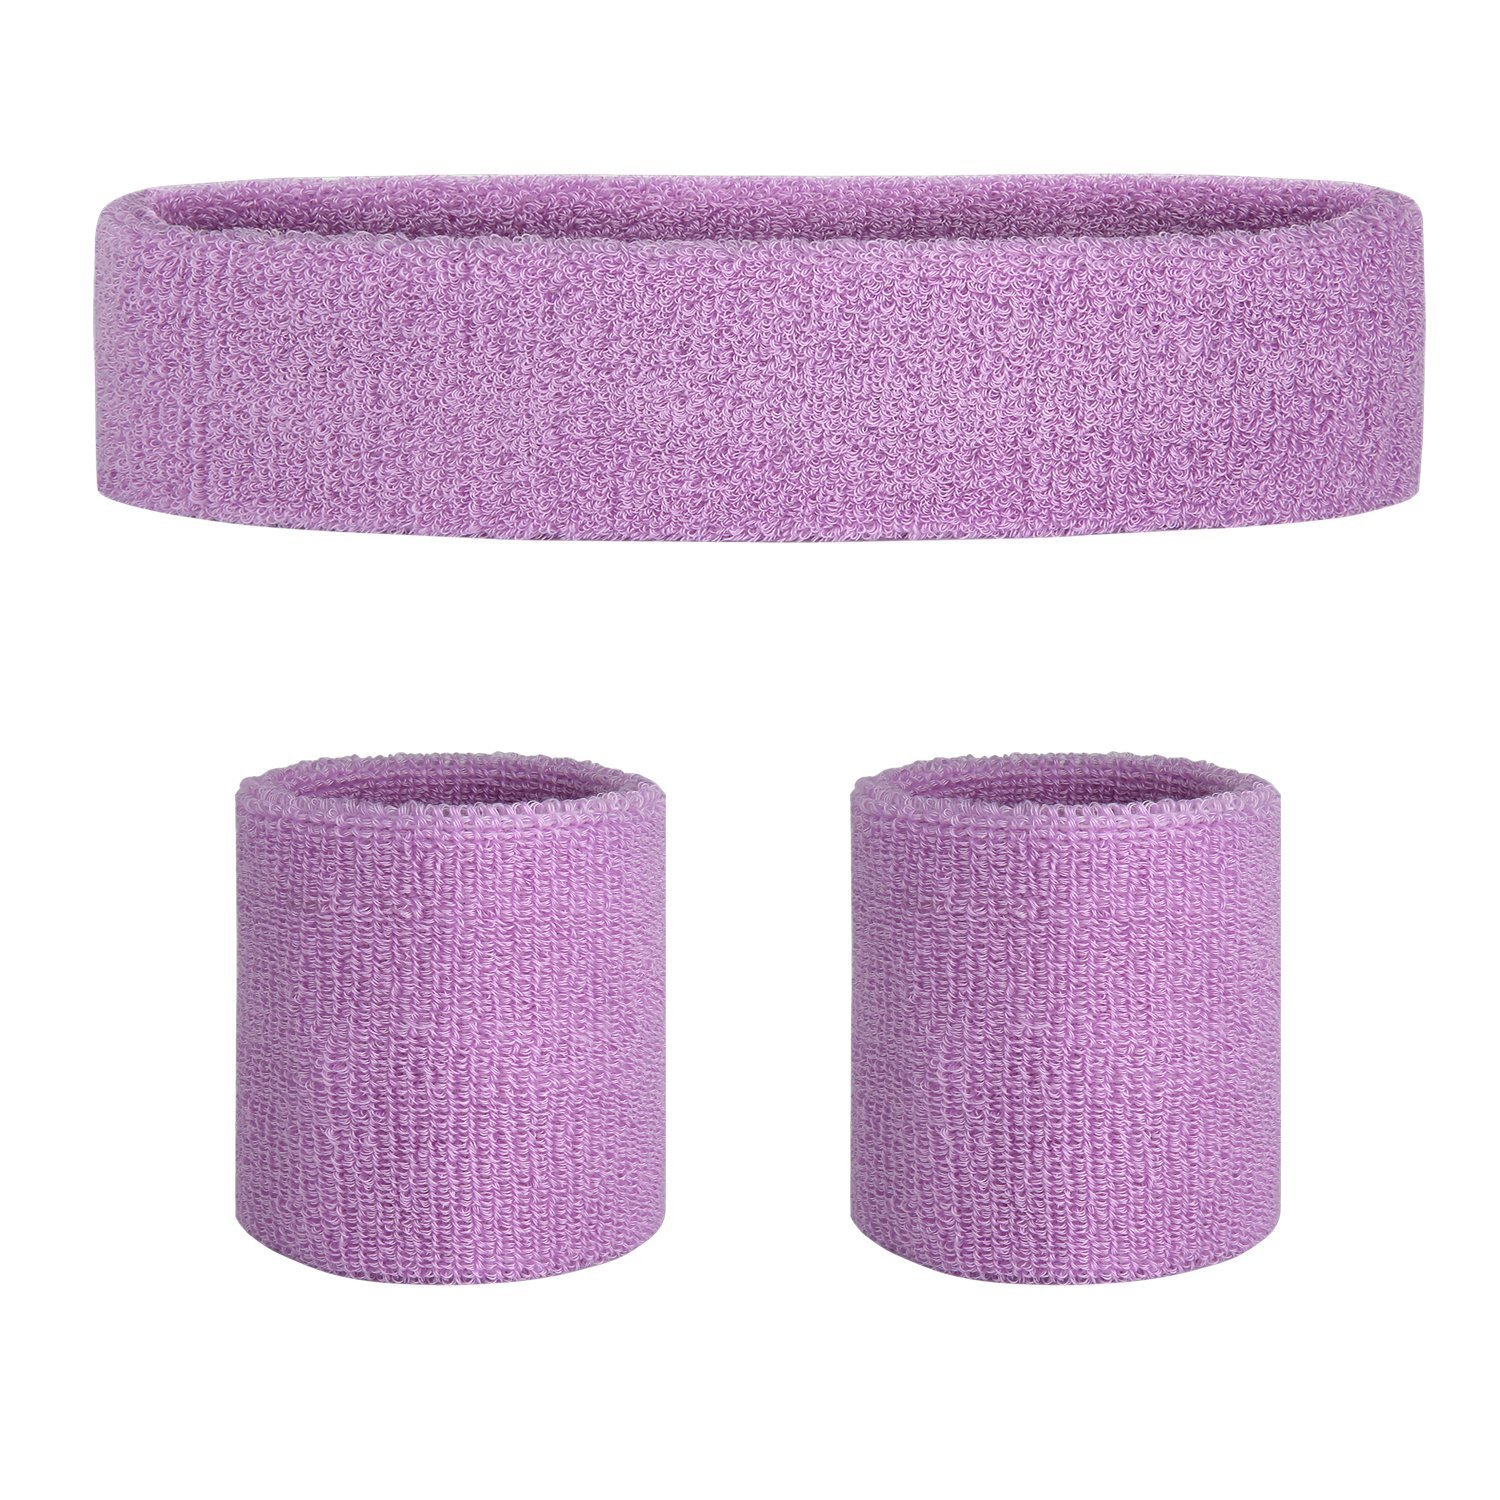 Meanch Sweatband Headband/ Wristband Perfect for Basketball Running Football